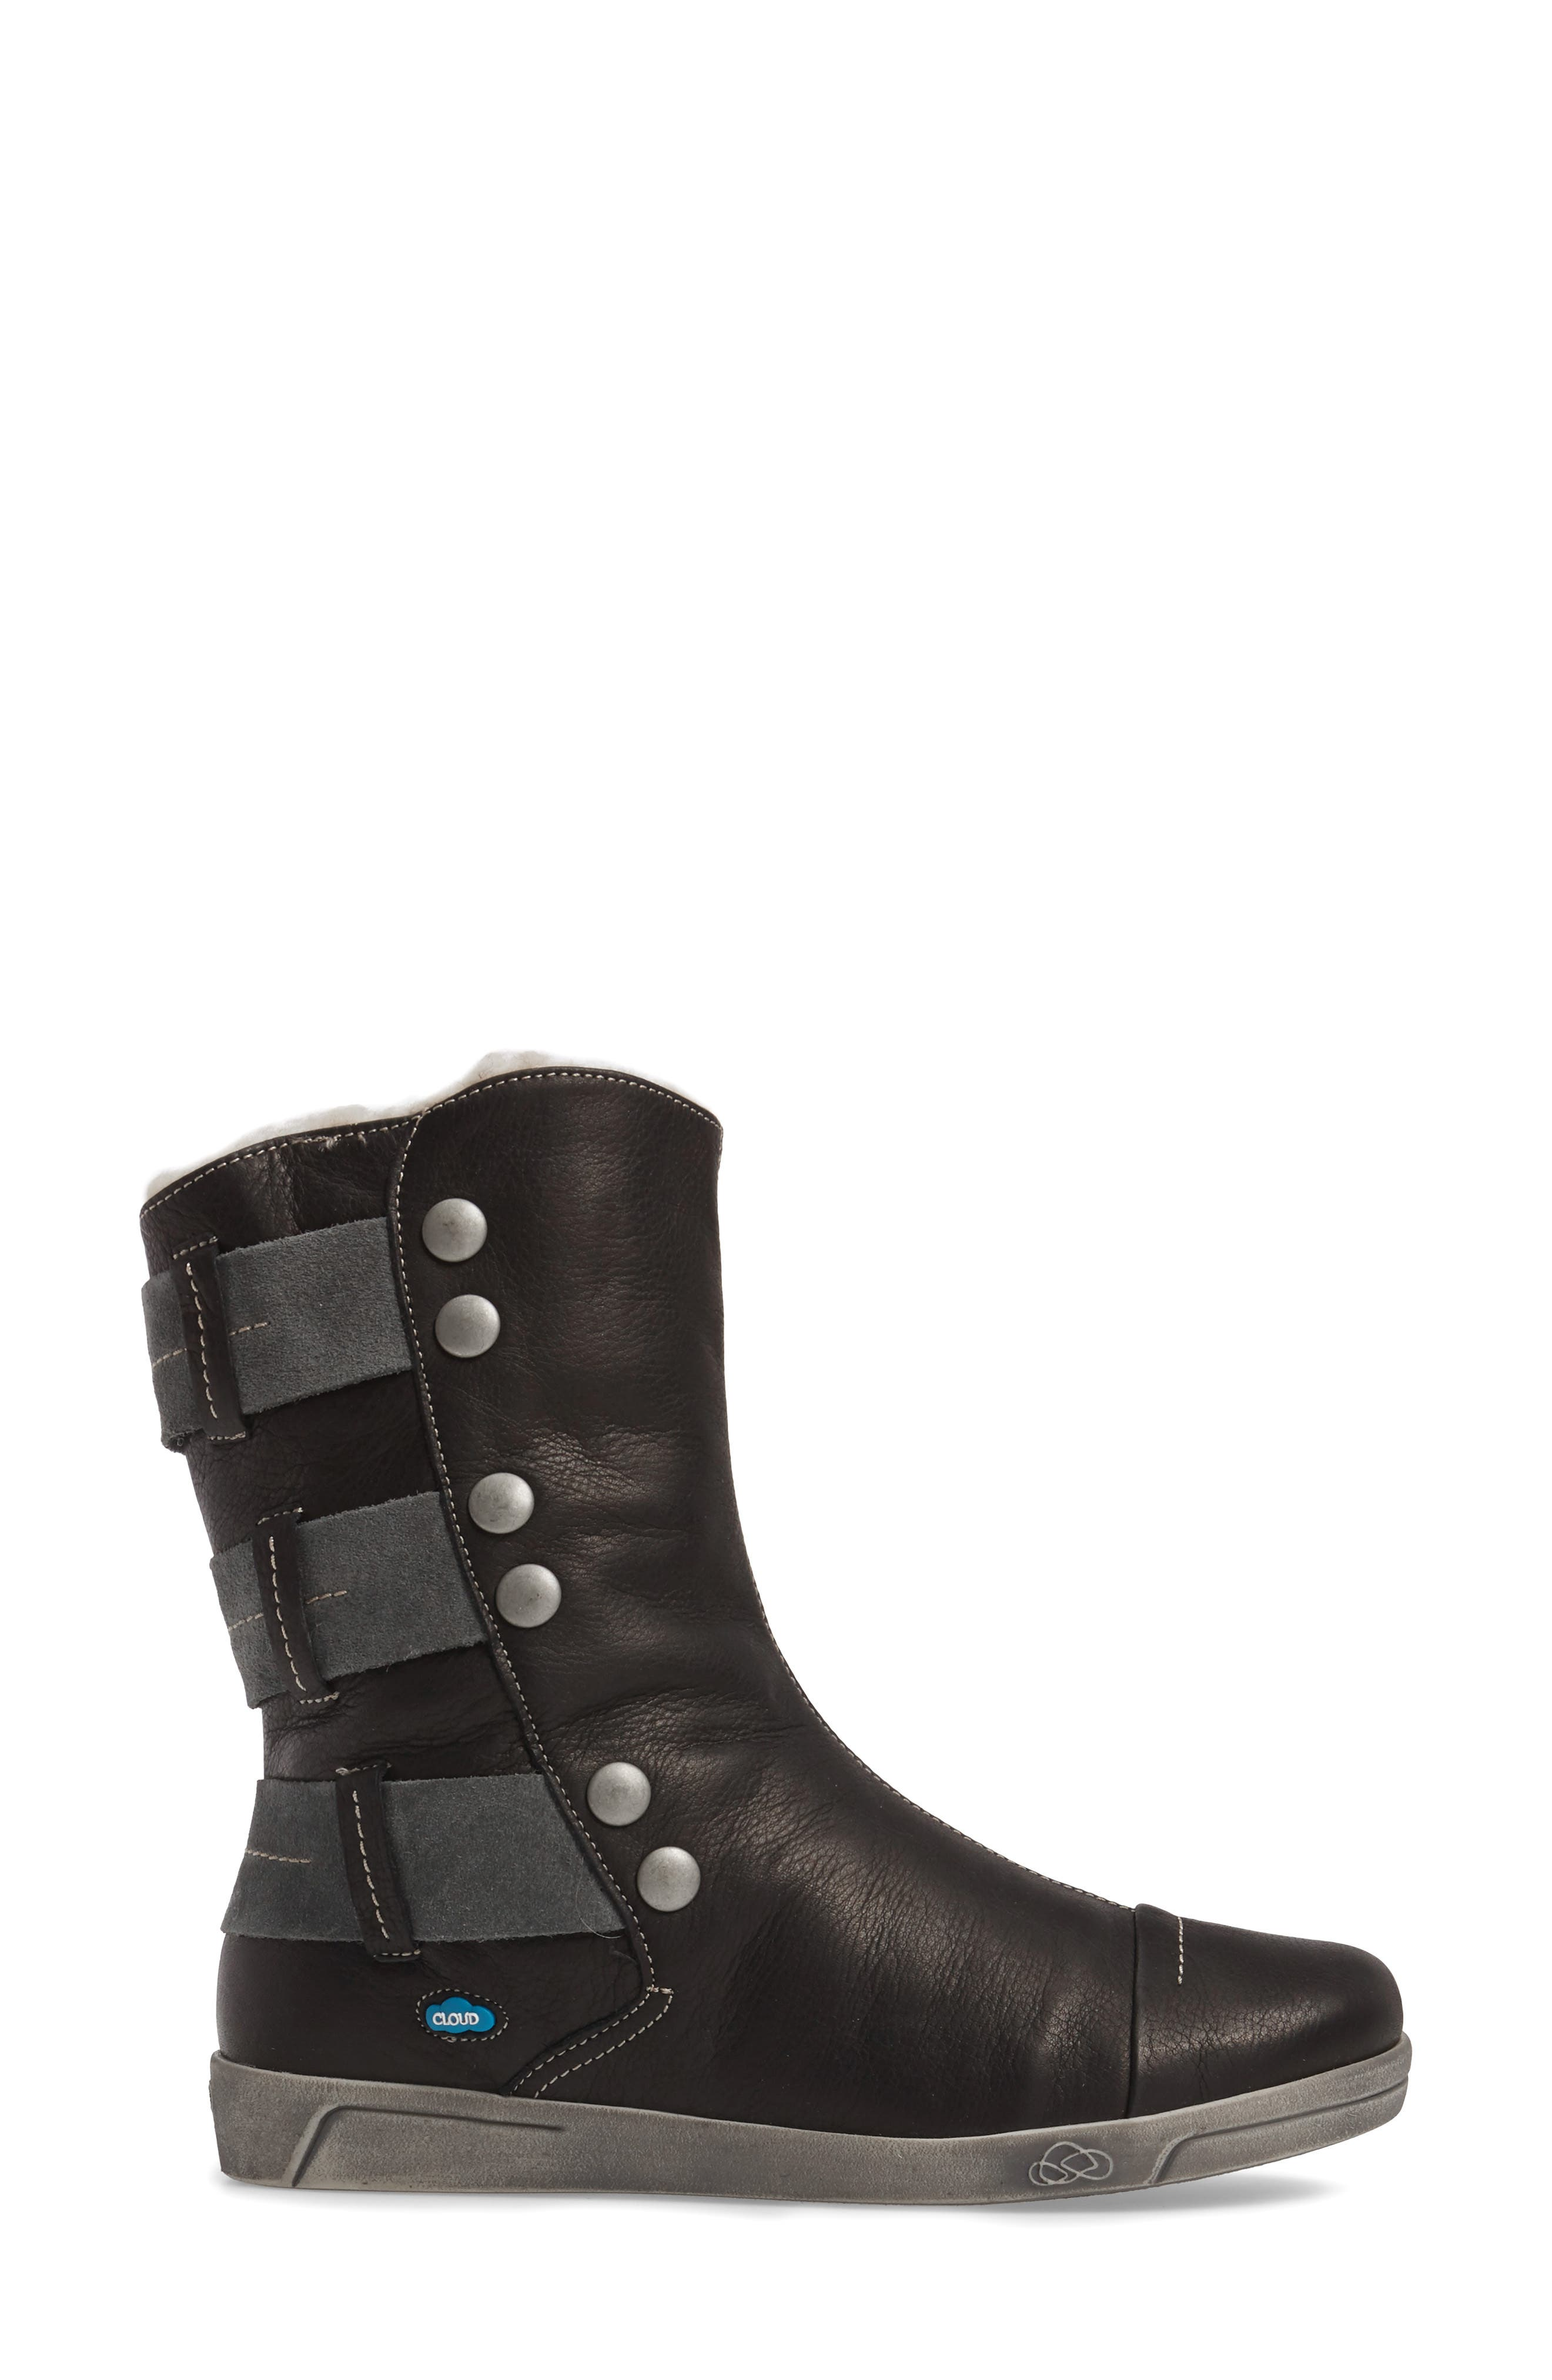 Amber Wool Lined Bootie,                             Alternate thumbnail 3, color,                             BLACK LEATHER